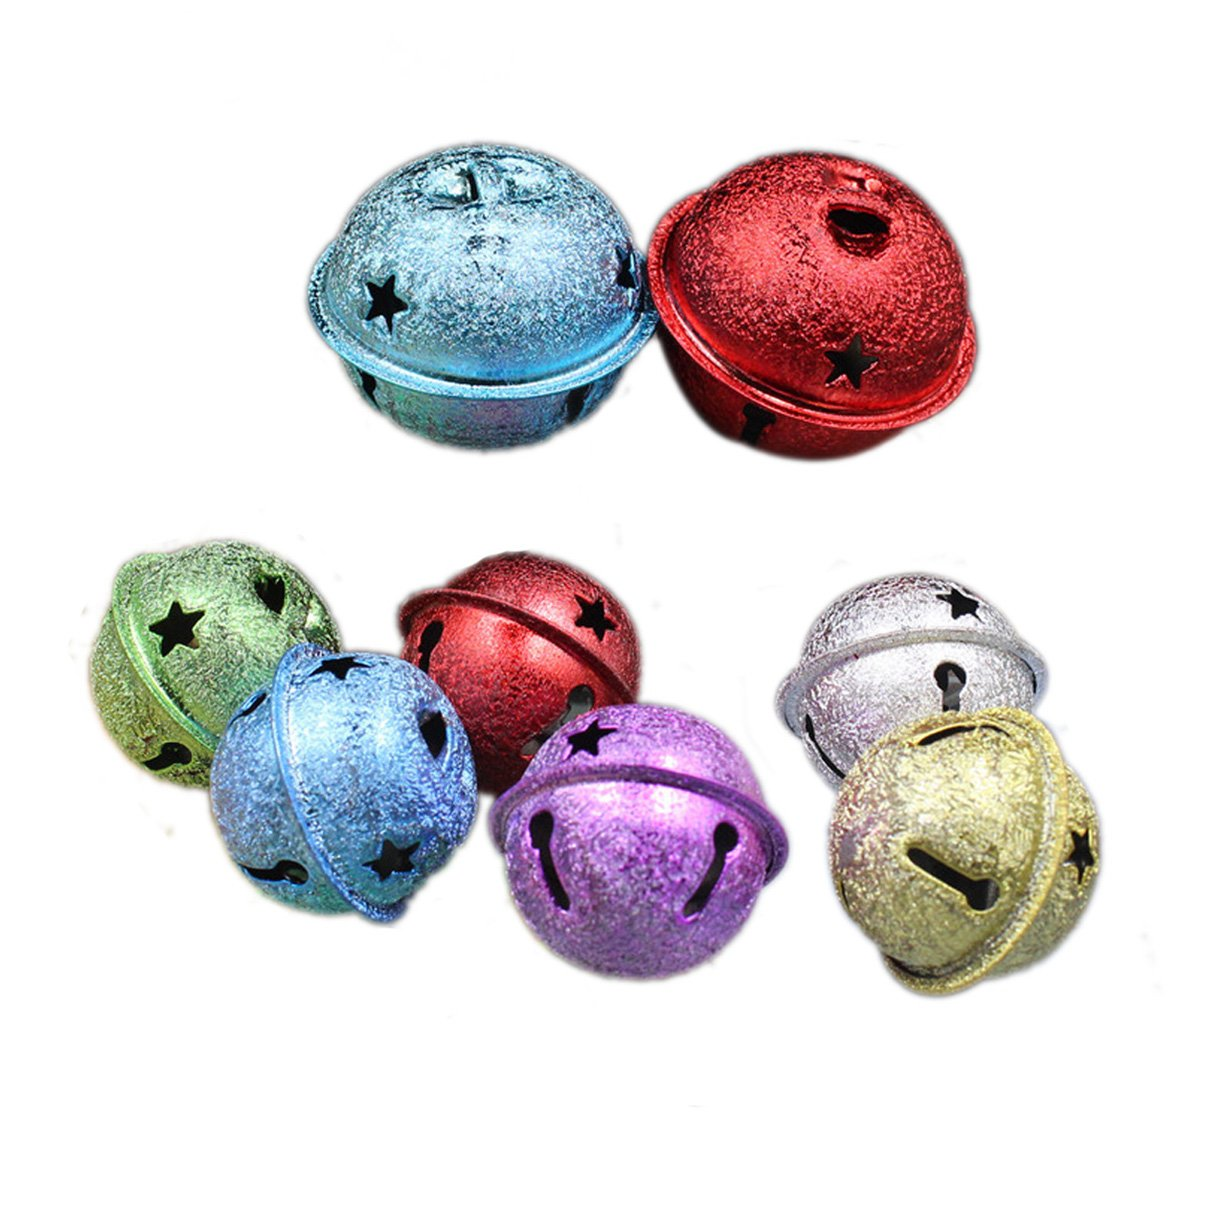 Aimira colorato Large Jingle Bells for DIY Crafts Christmas Decoartion 30-pack, Mixed, 24 mm